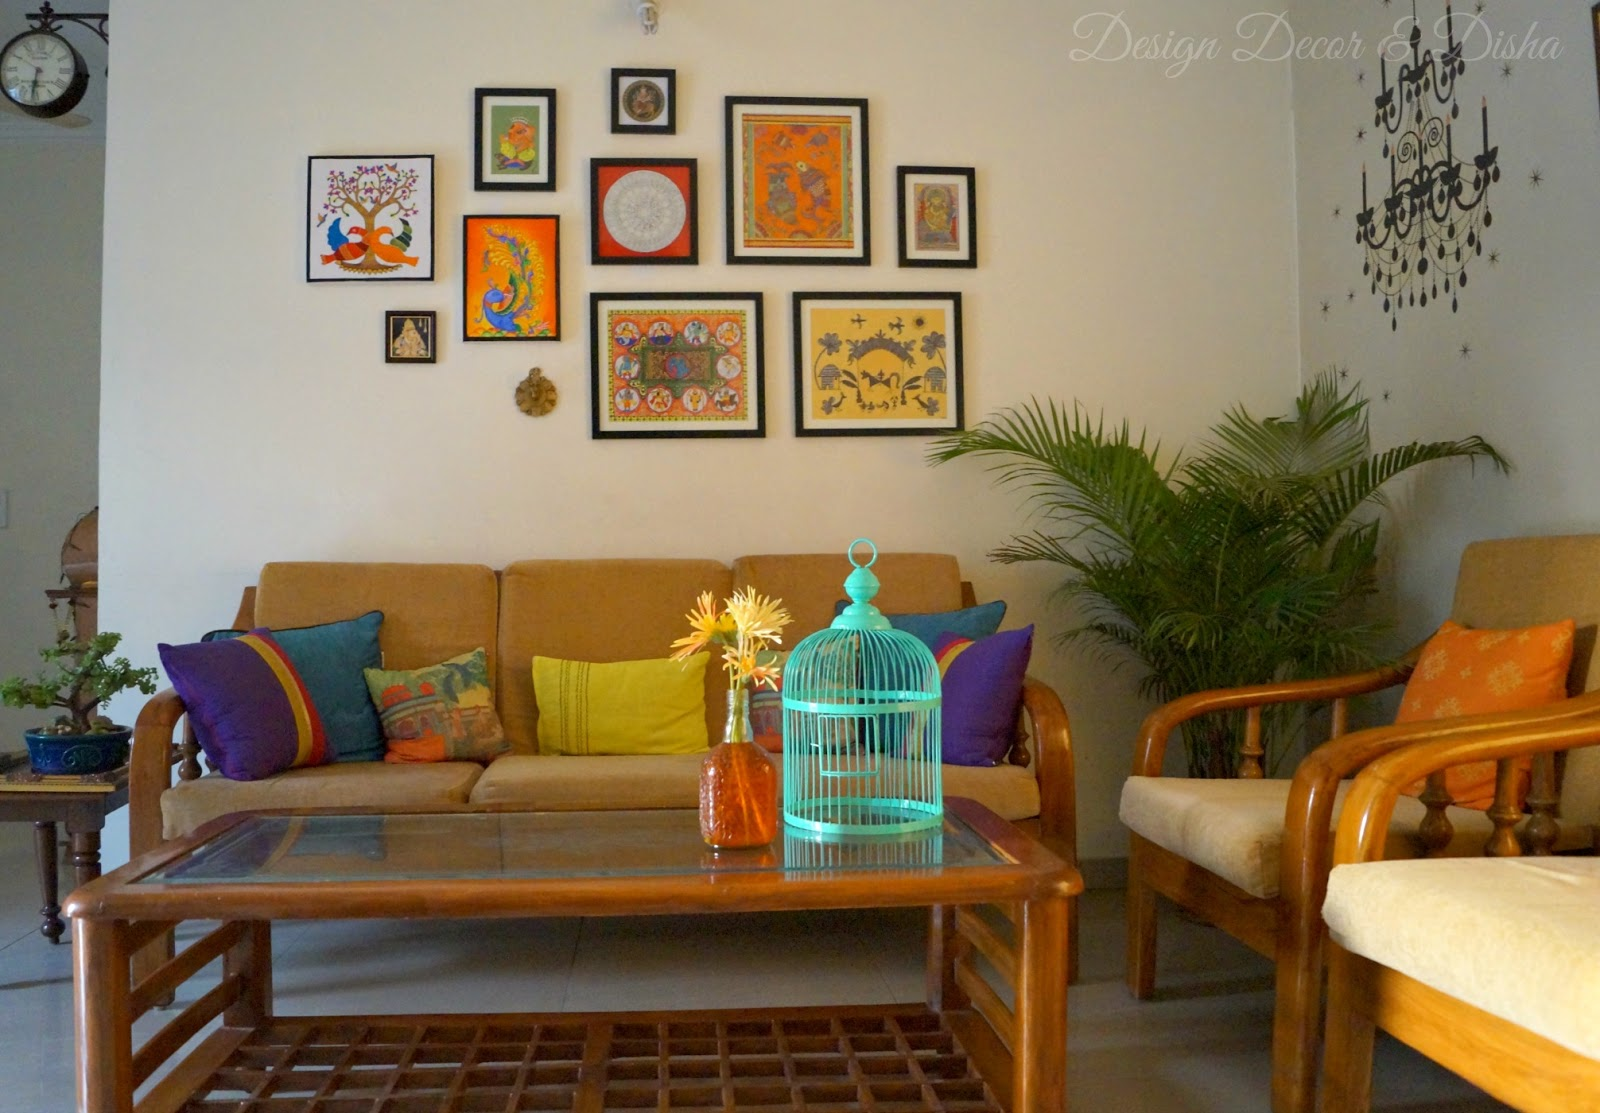 ... Design Decor Disha Ethnic Indian Living Room Designs 1000 Images ... Part 57